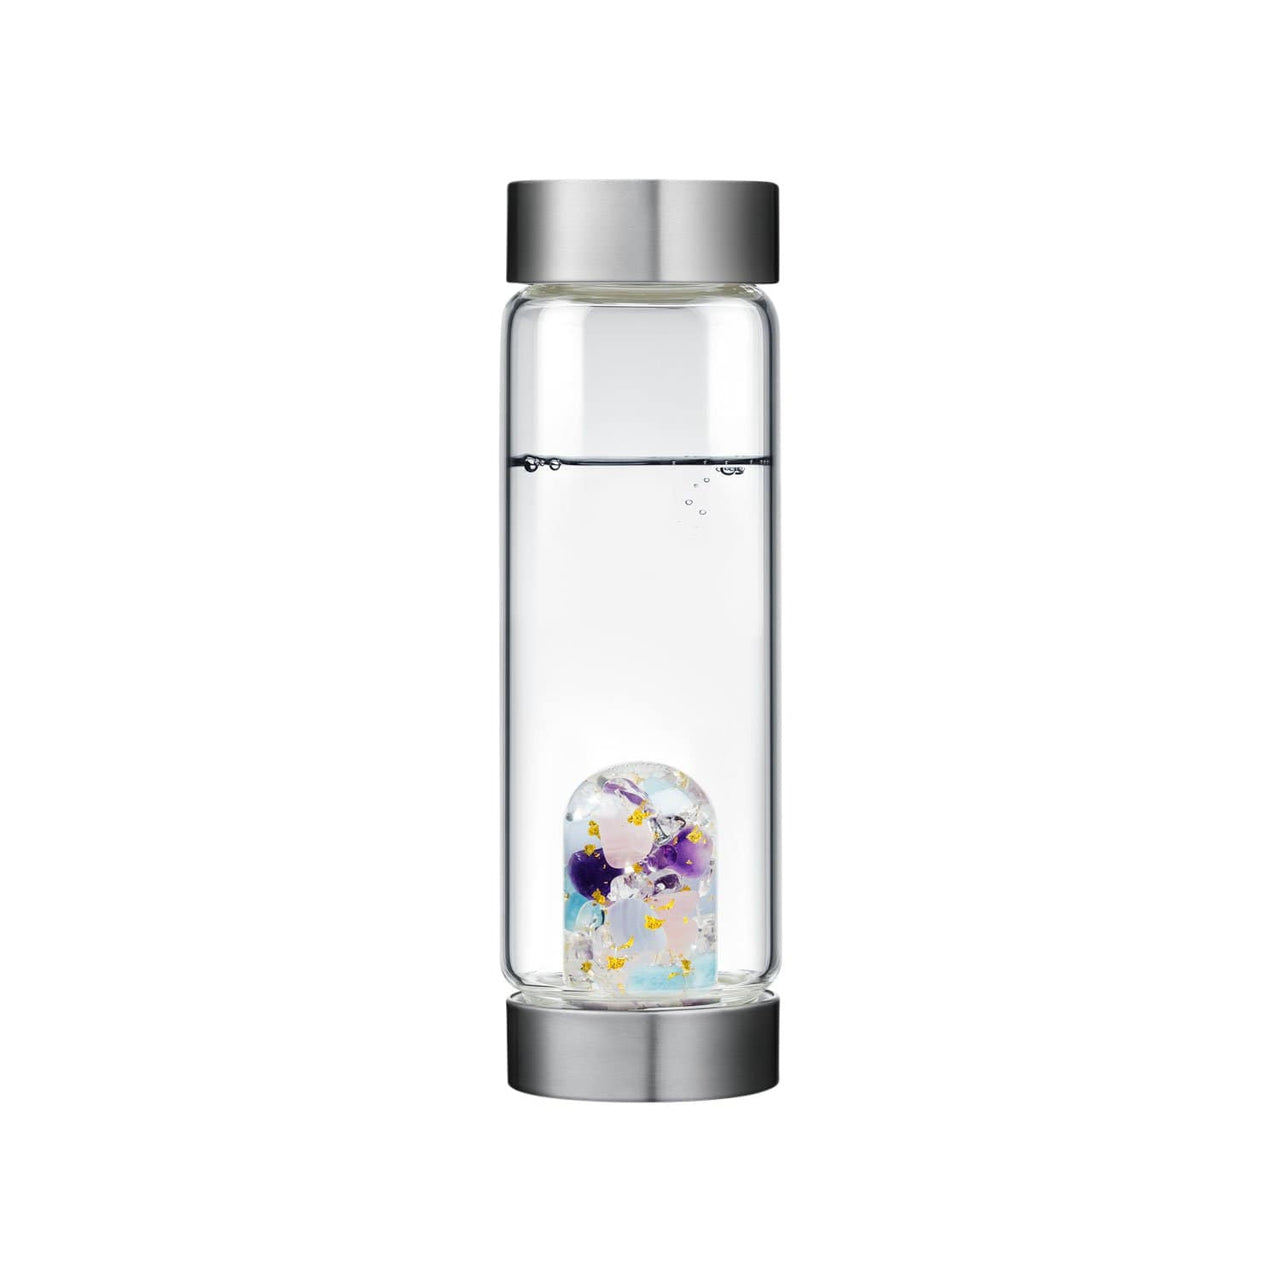 Gem-Water Co Flasks & Water Bottles Miss Unicorn Gem-Water Bottle by VitaJuwel